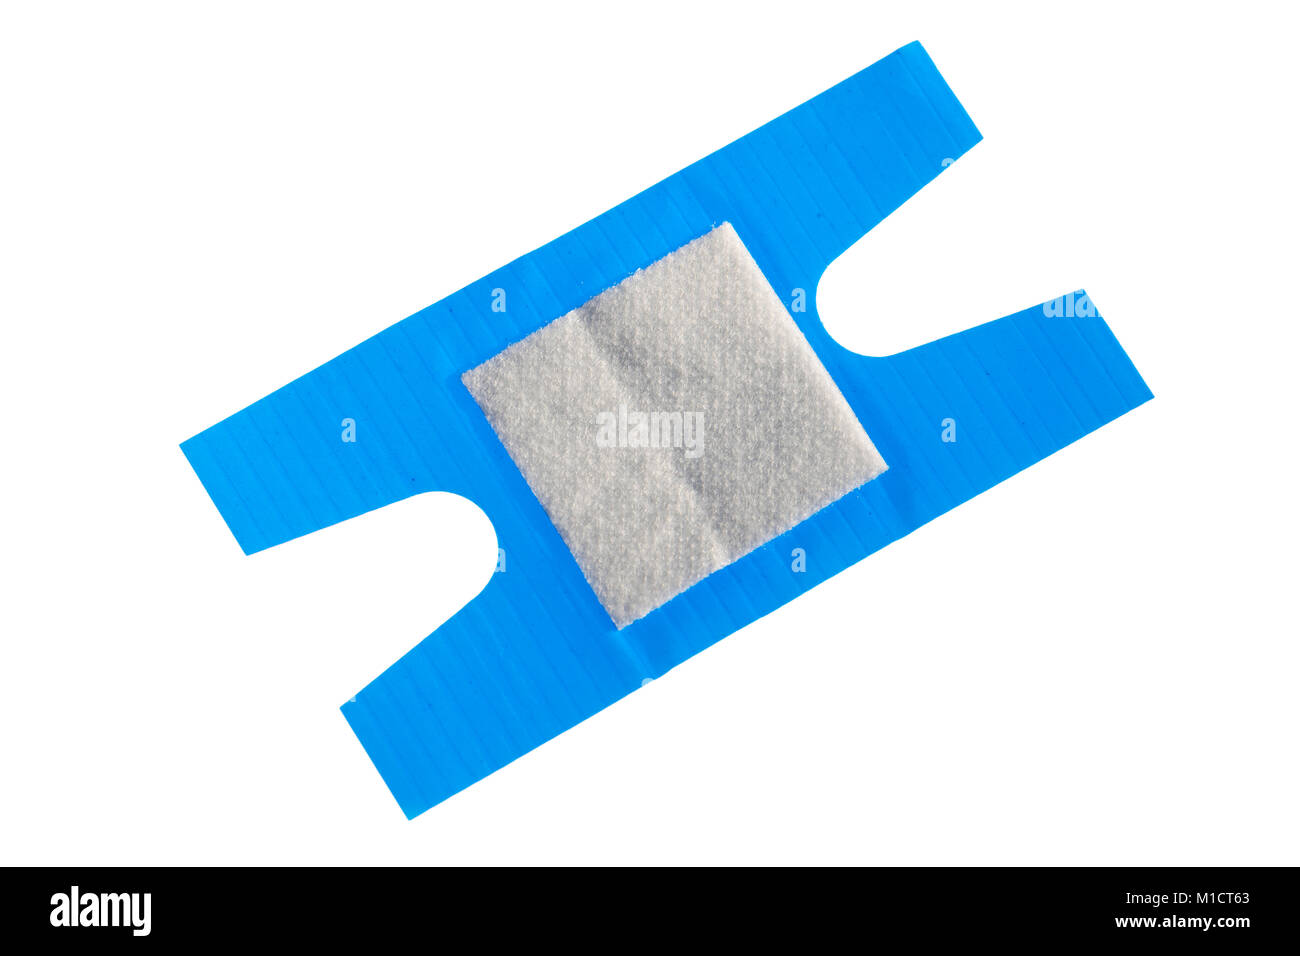 Blue detectable plaster. Sticking plaster cut out or isolated on a white background. First aid plaster. - Stock Image